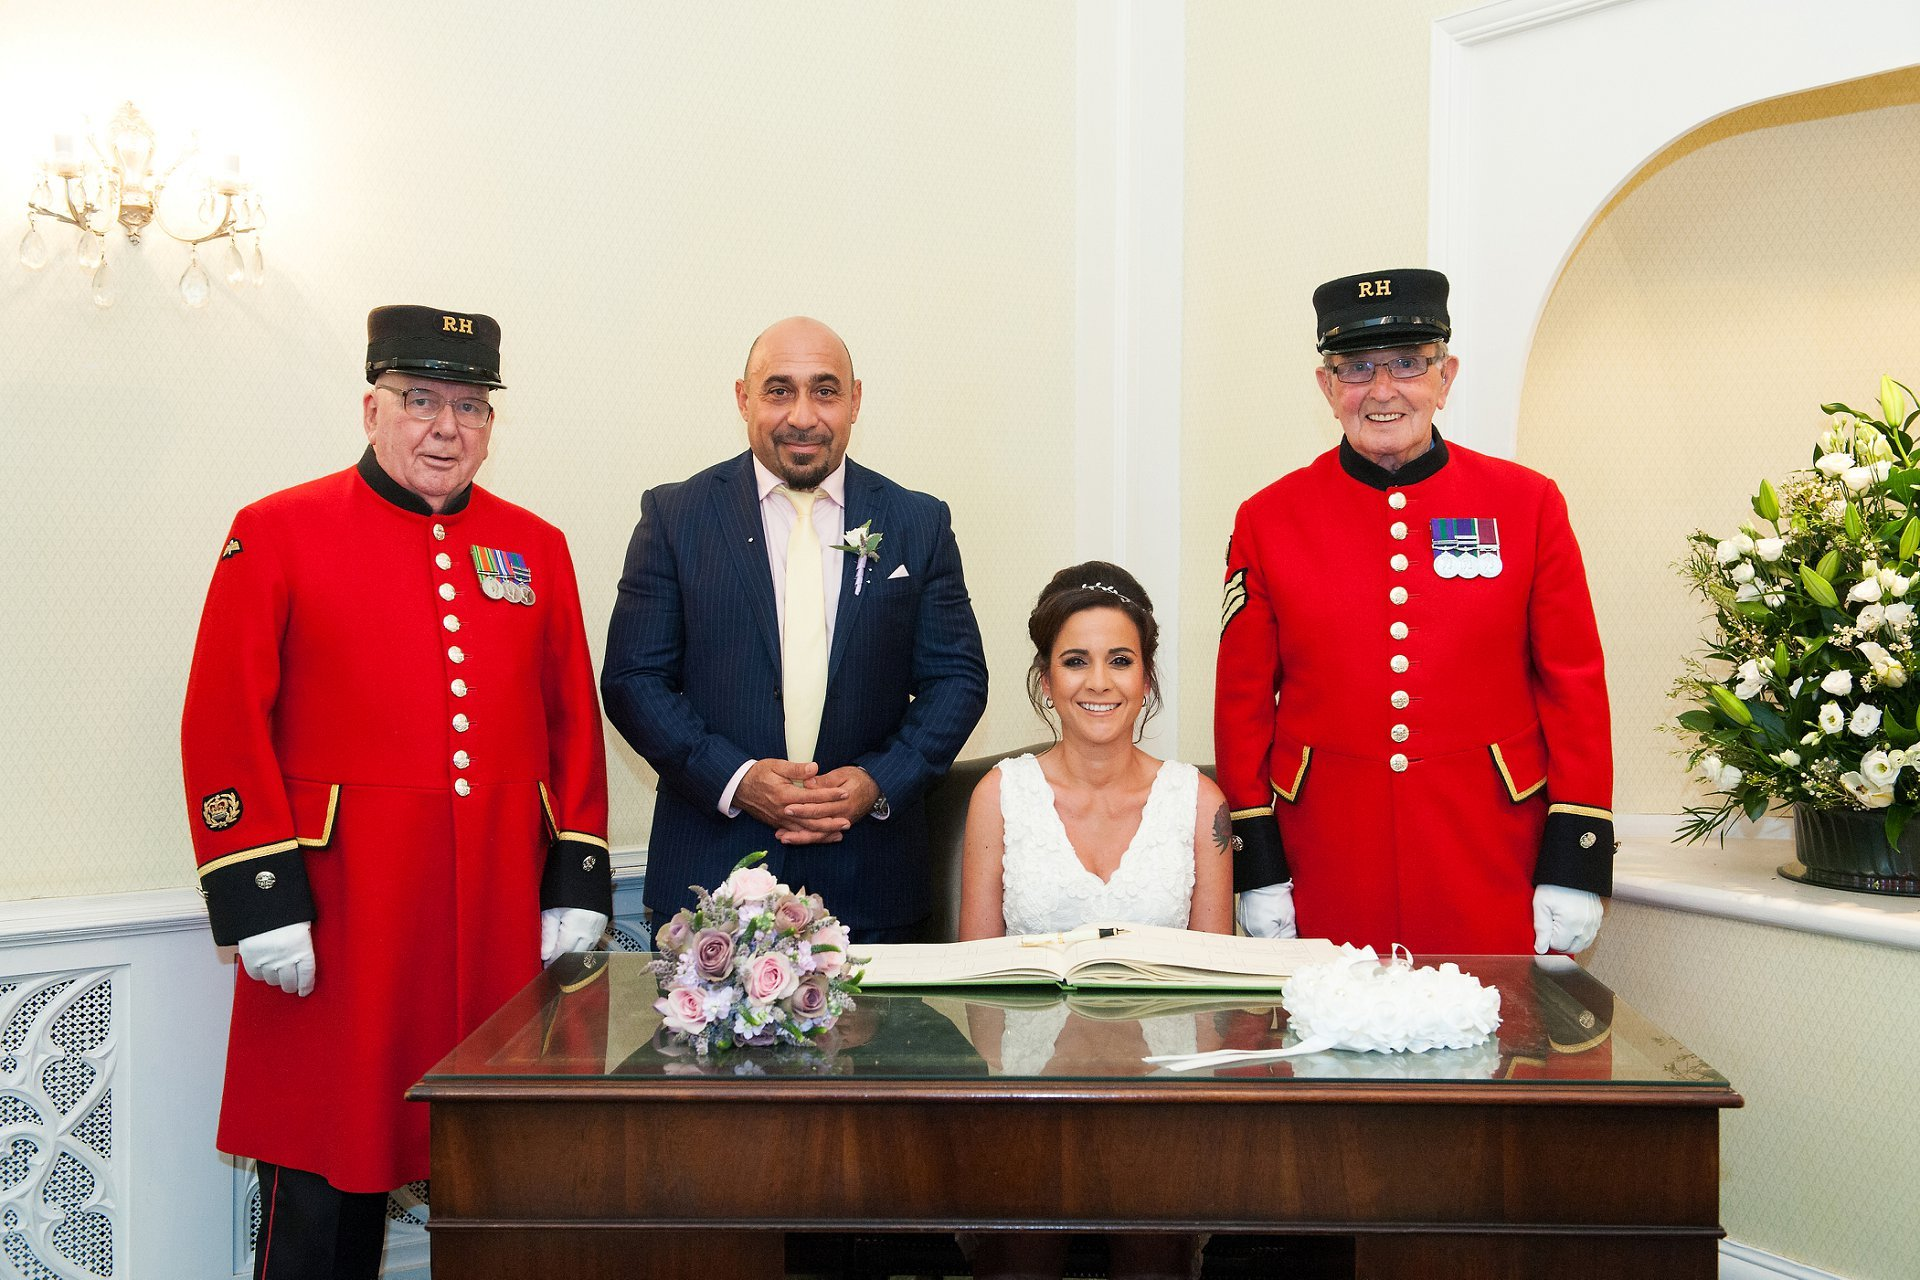 How to book Chelsea Pensioners to be a witness to my wedding via the Royal Hospital